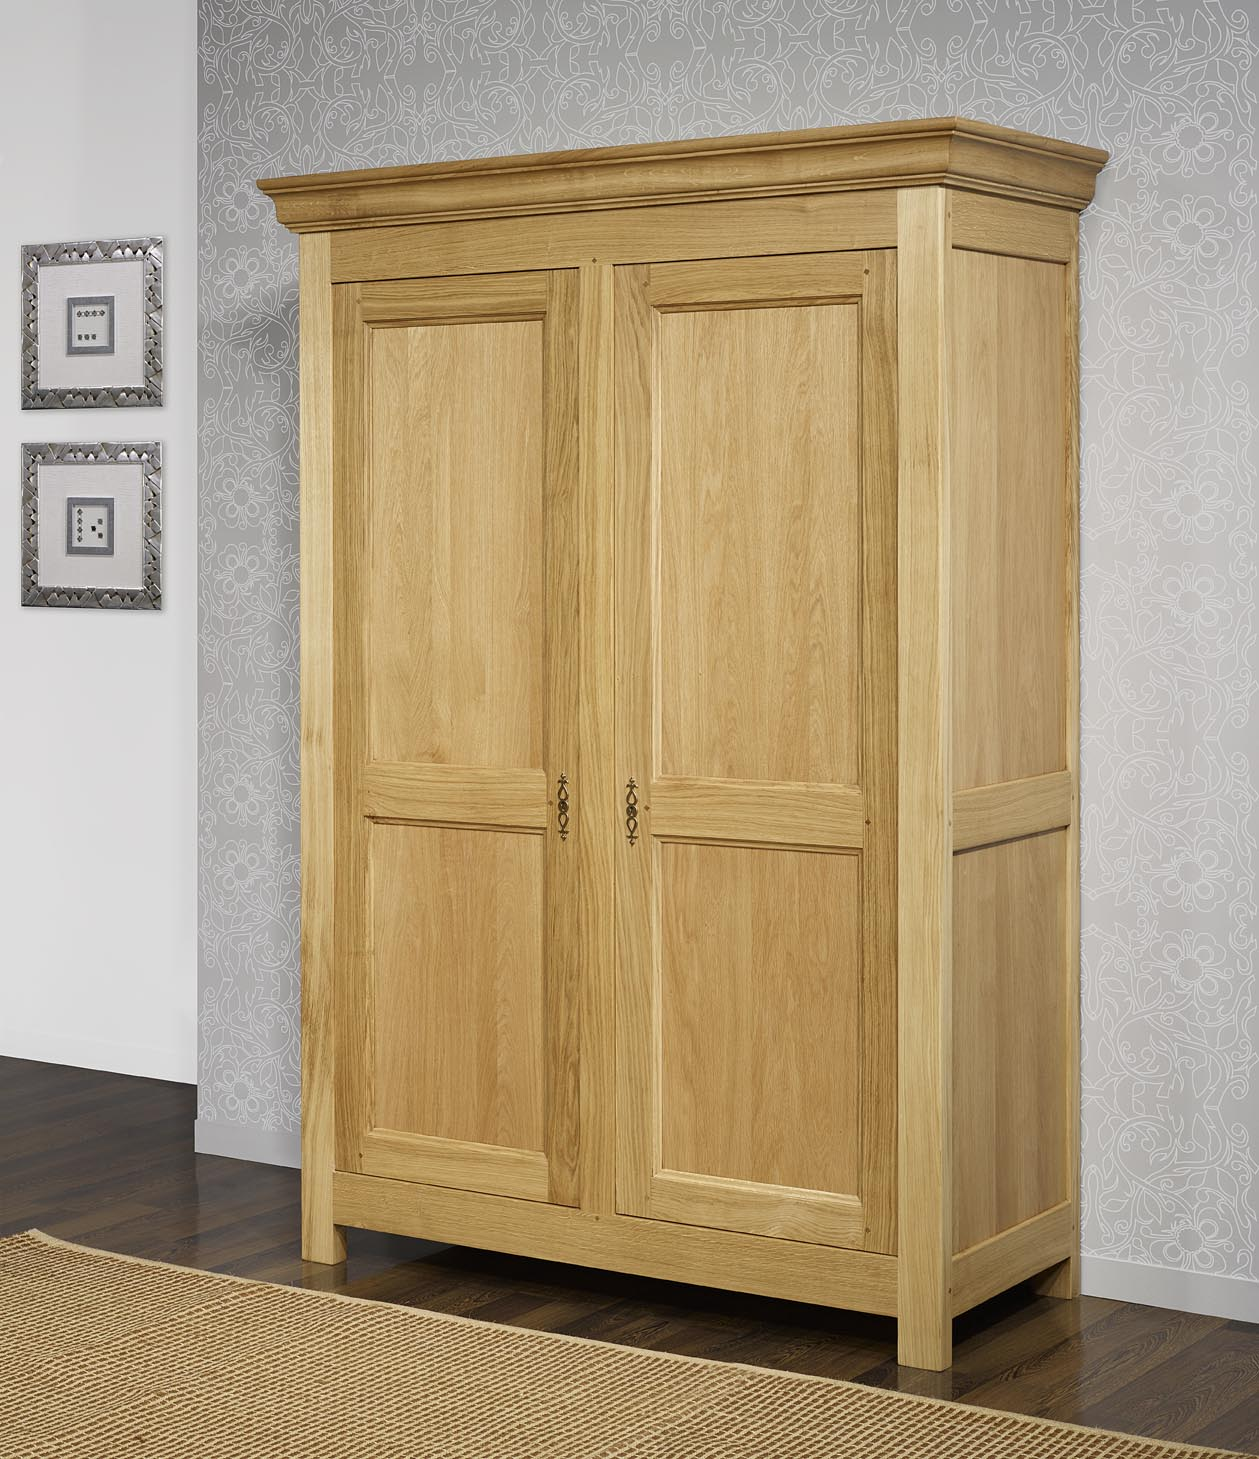 armoire 2 portes en ch ne massif de style campagnard. Black Bedroom Furniture Sets. Home Design Ideas